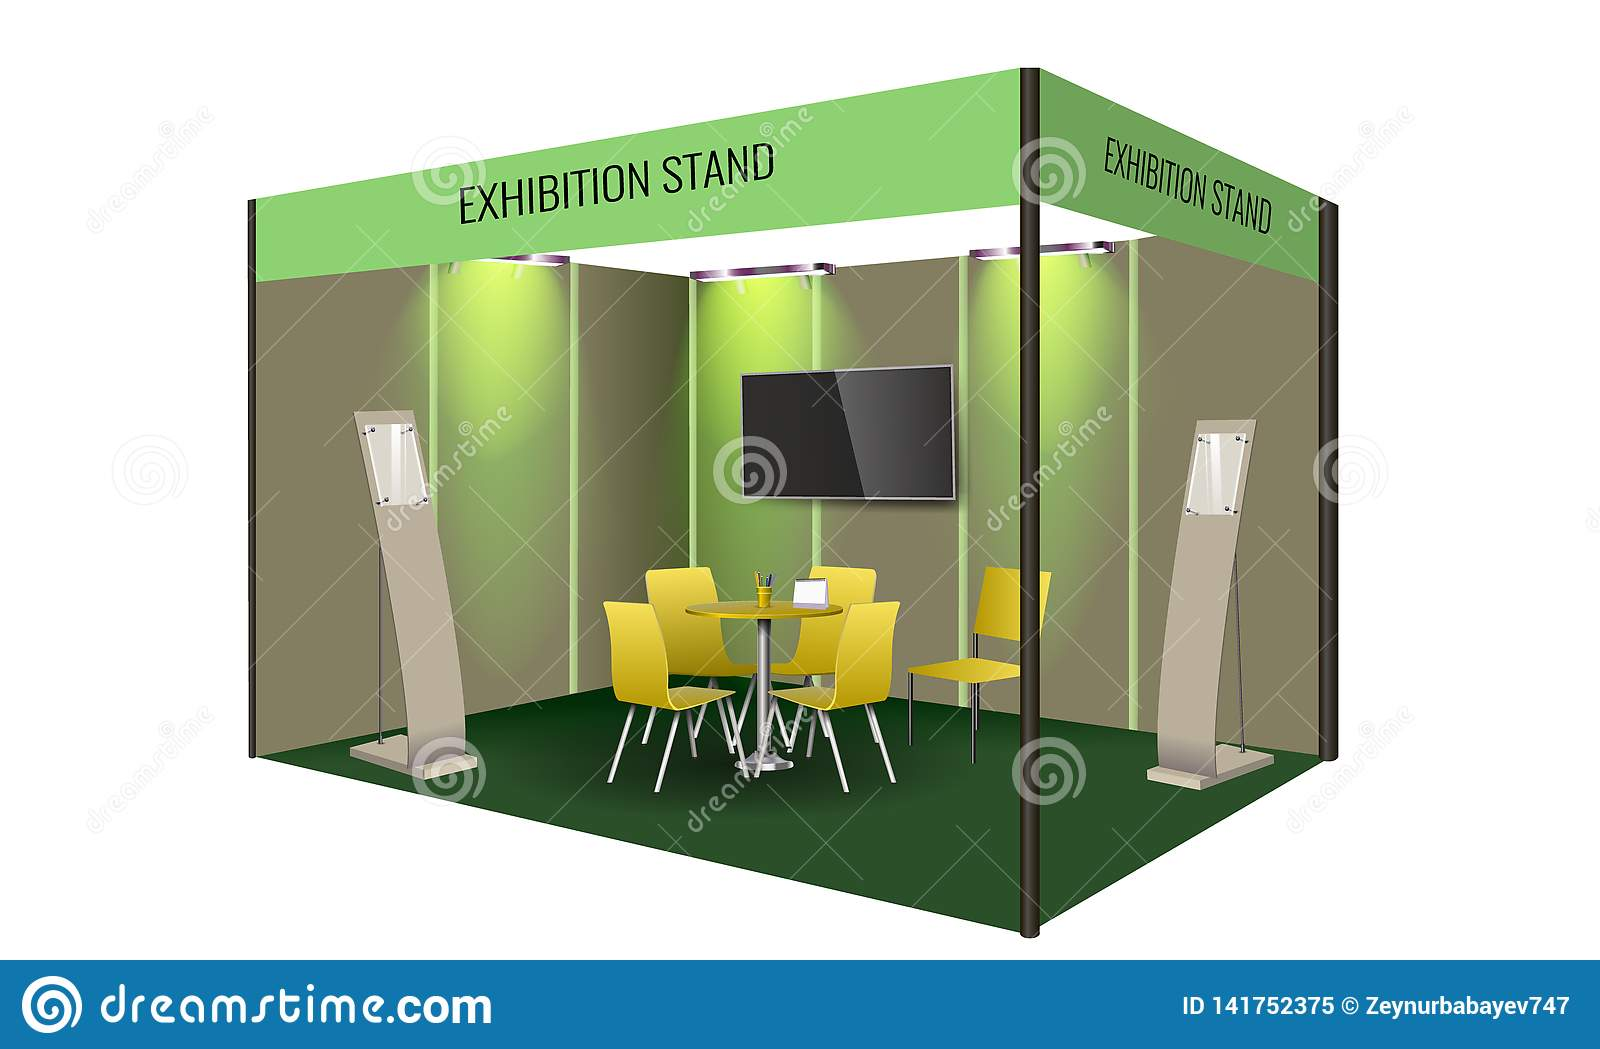 Exhibition Booth Banner : Exhibition stand display design with table and chair info board